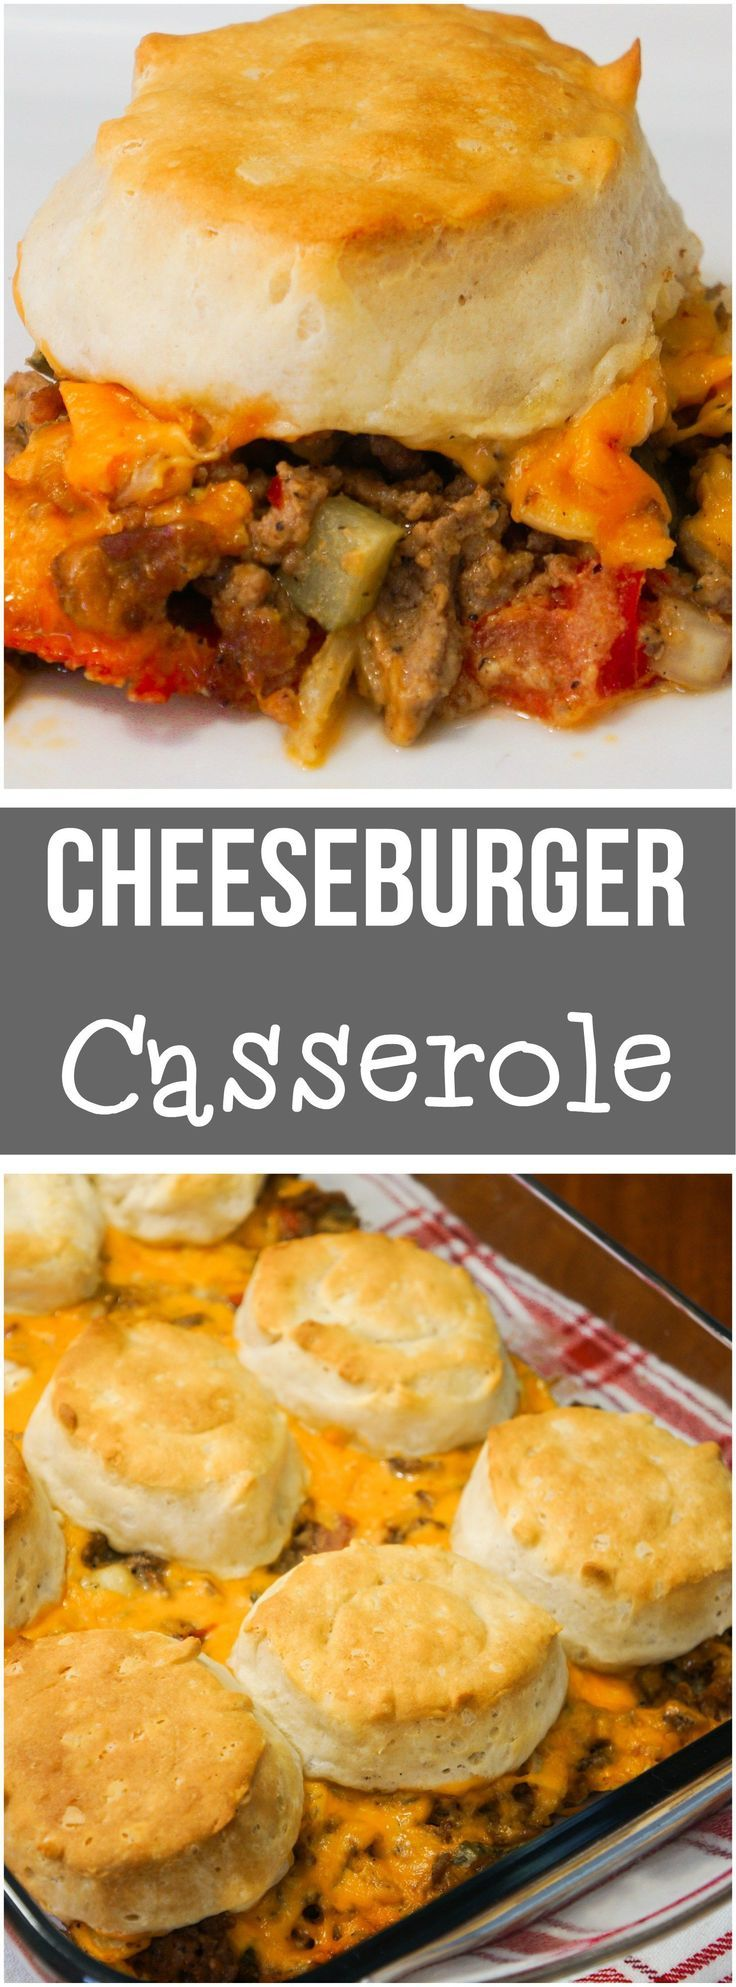 This Cheeseburger Casserole is a great easy dinner recipe using ground beef. All the components of a hamburger in a one dish meal. #dinner #cheese